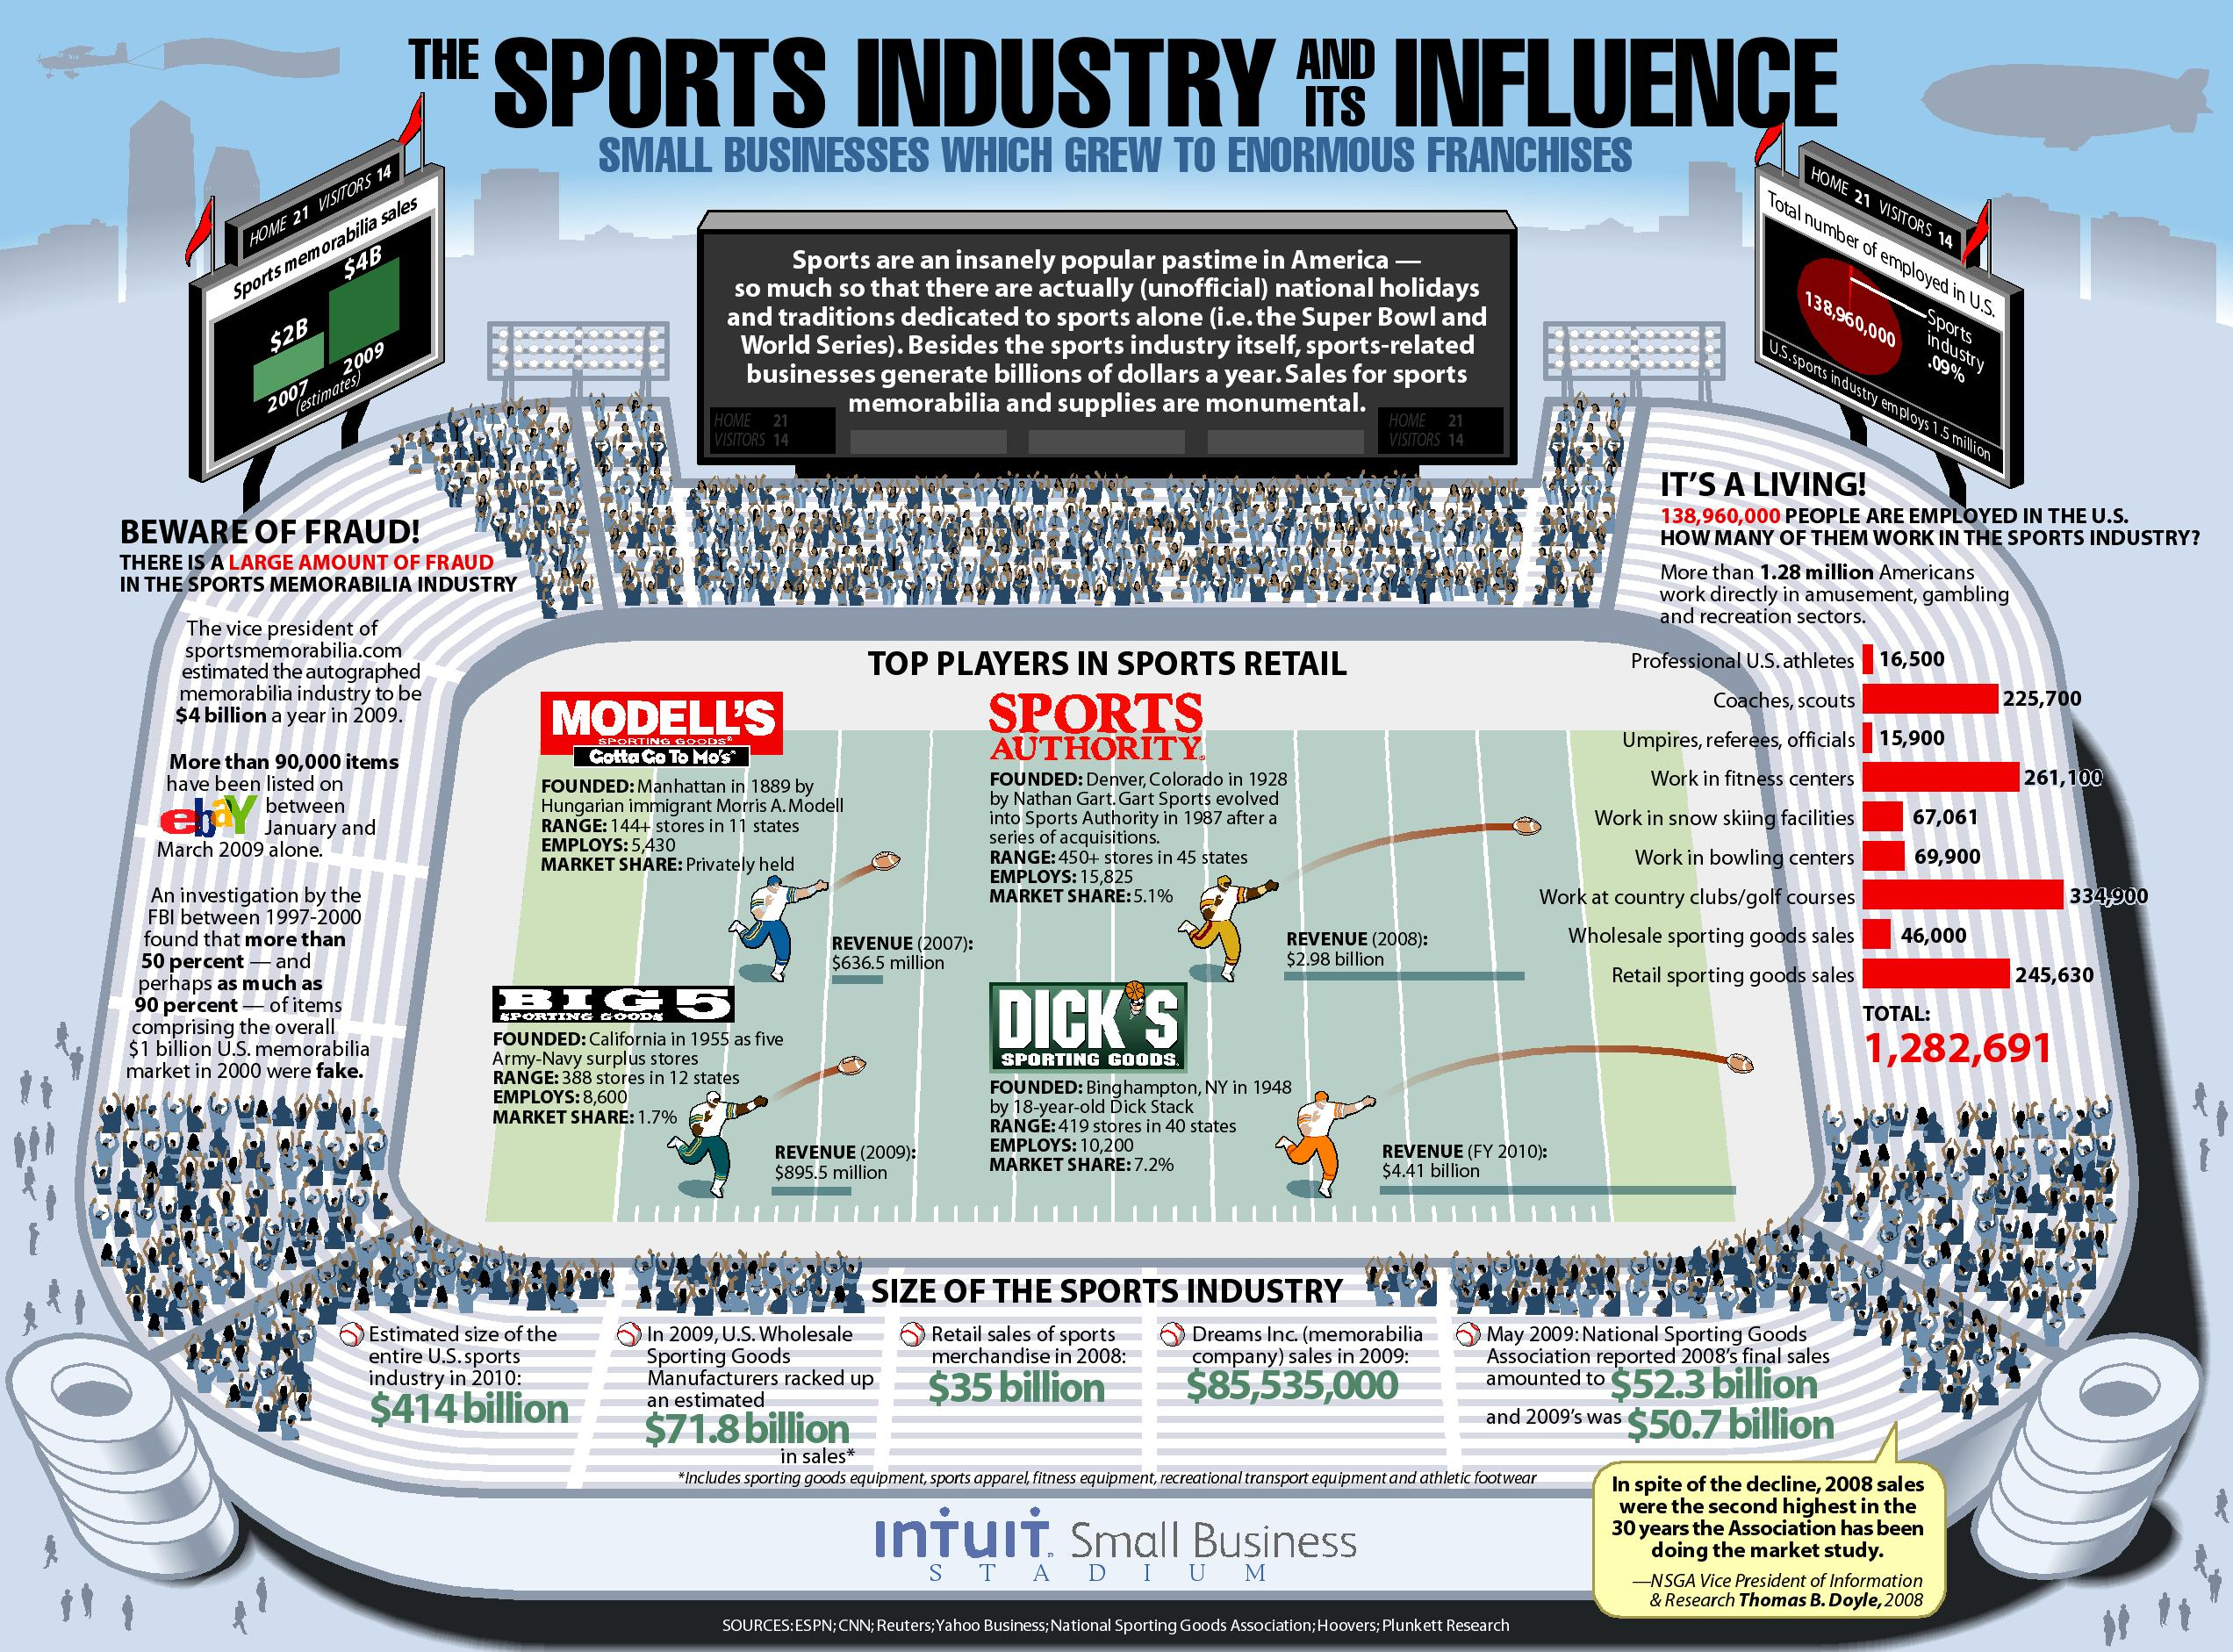 The Sports Industry